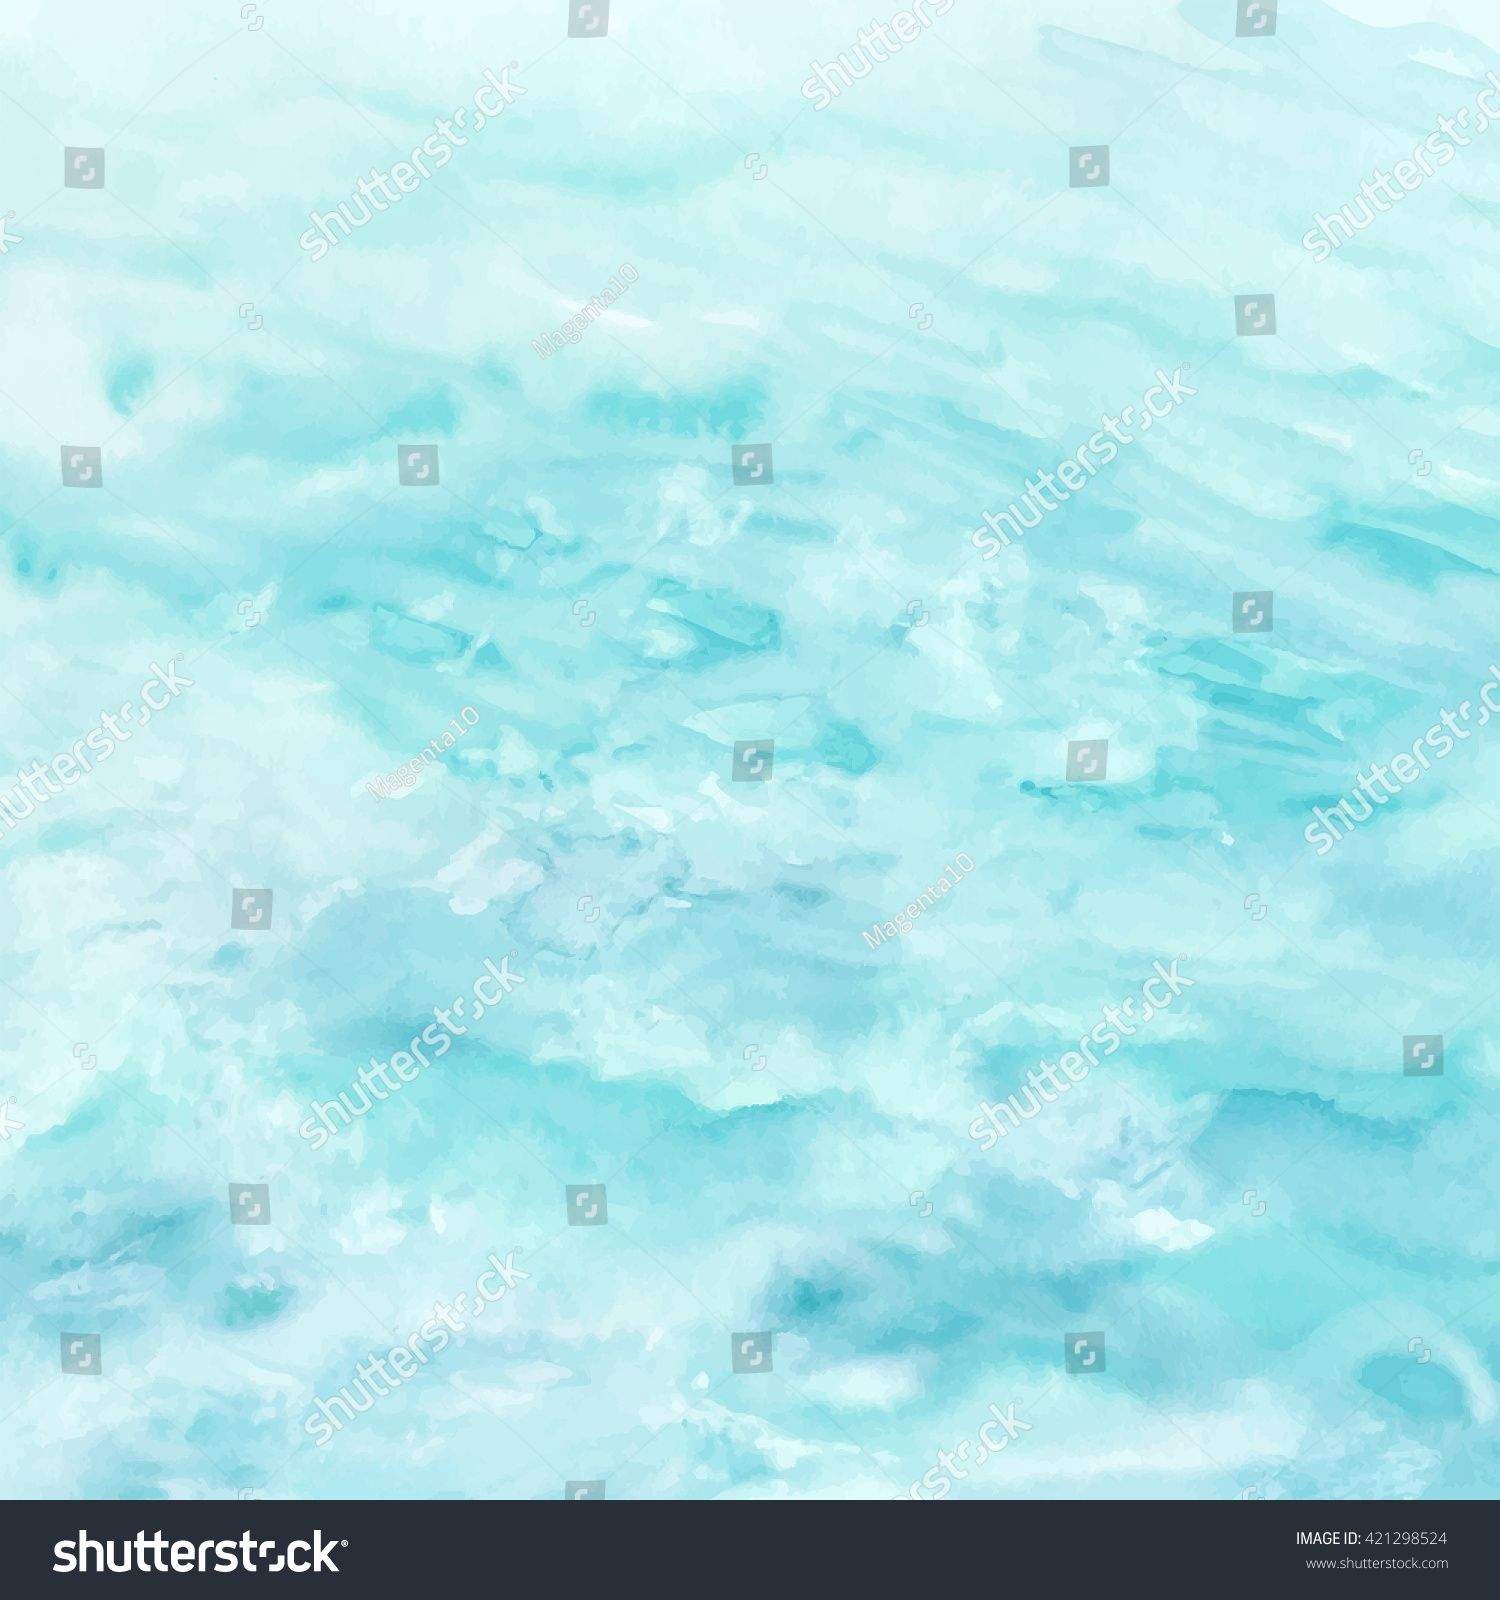 Sea Water Texture Abstract Watercolor Background Vector